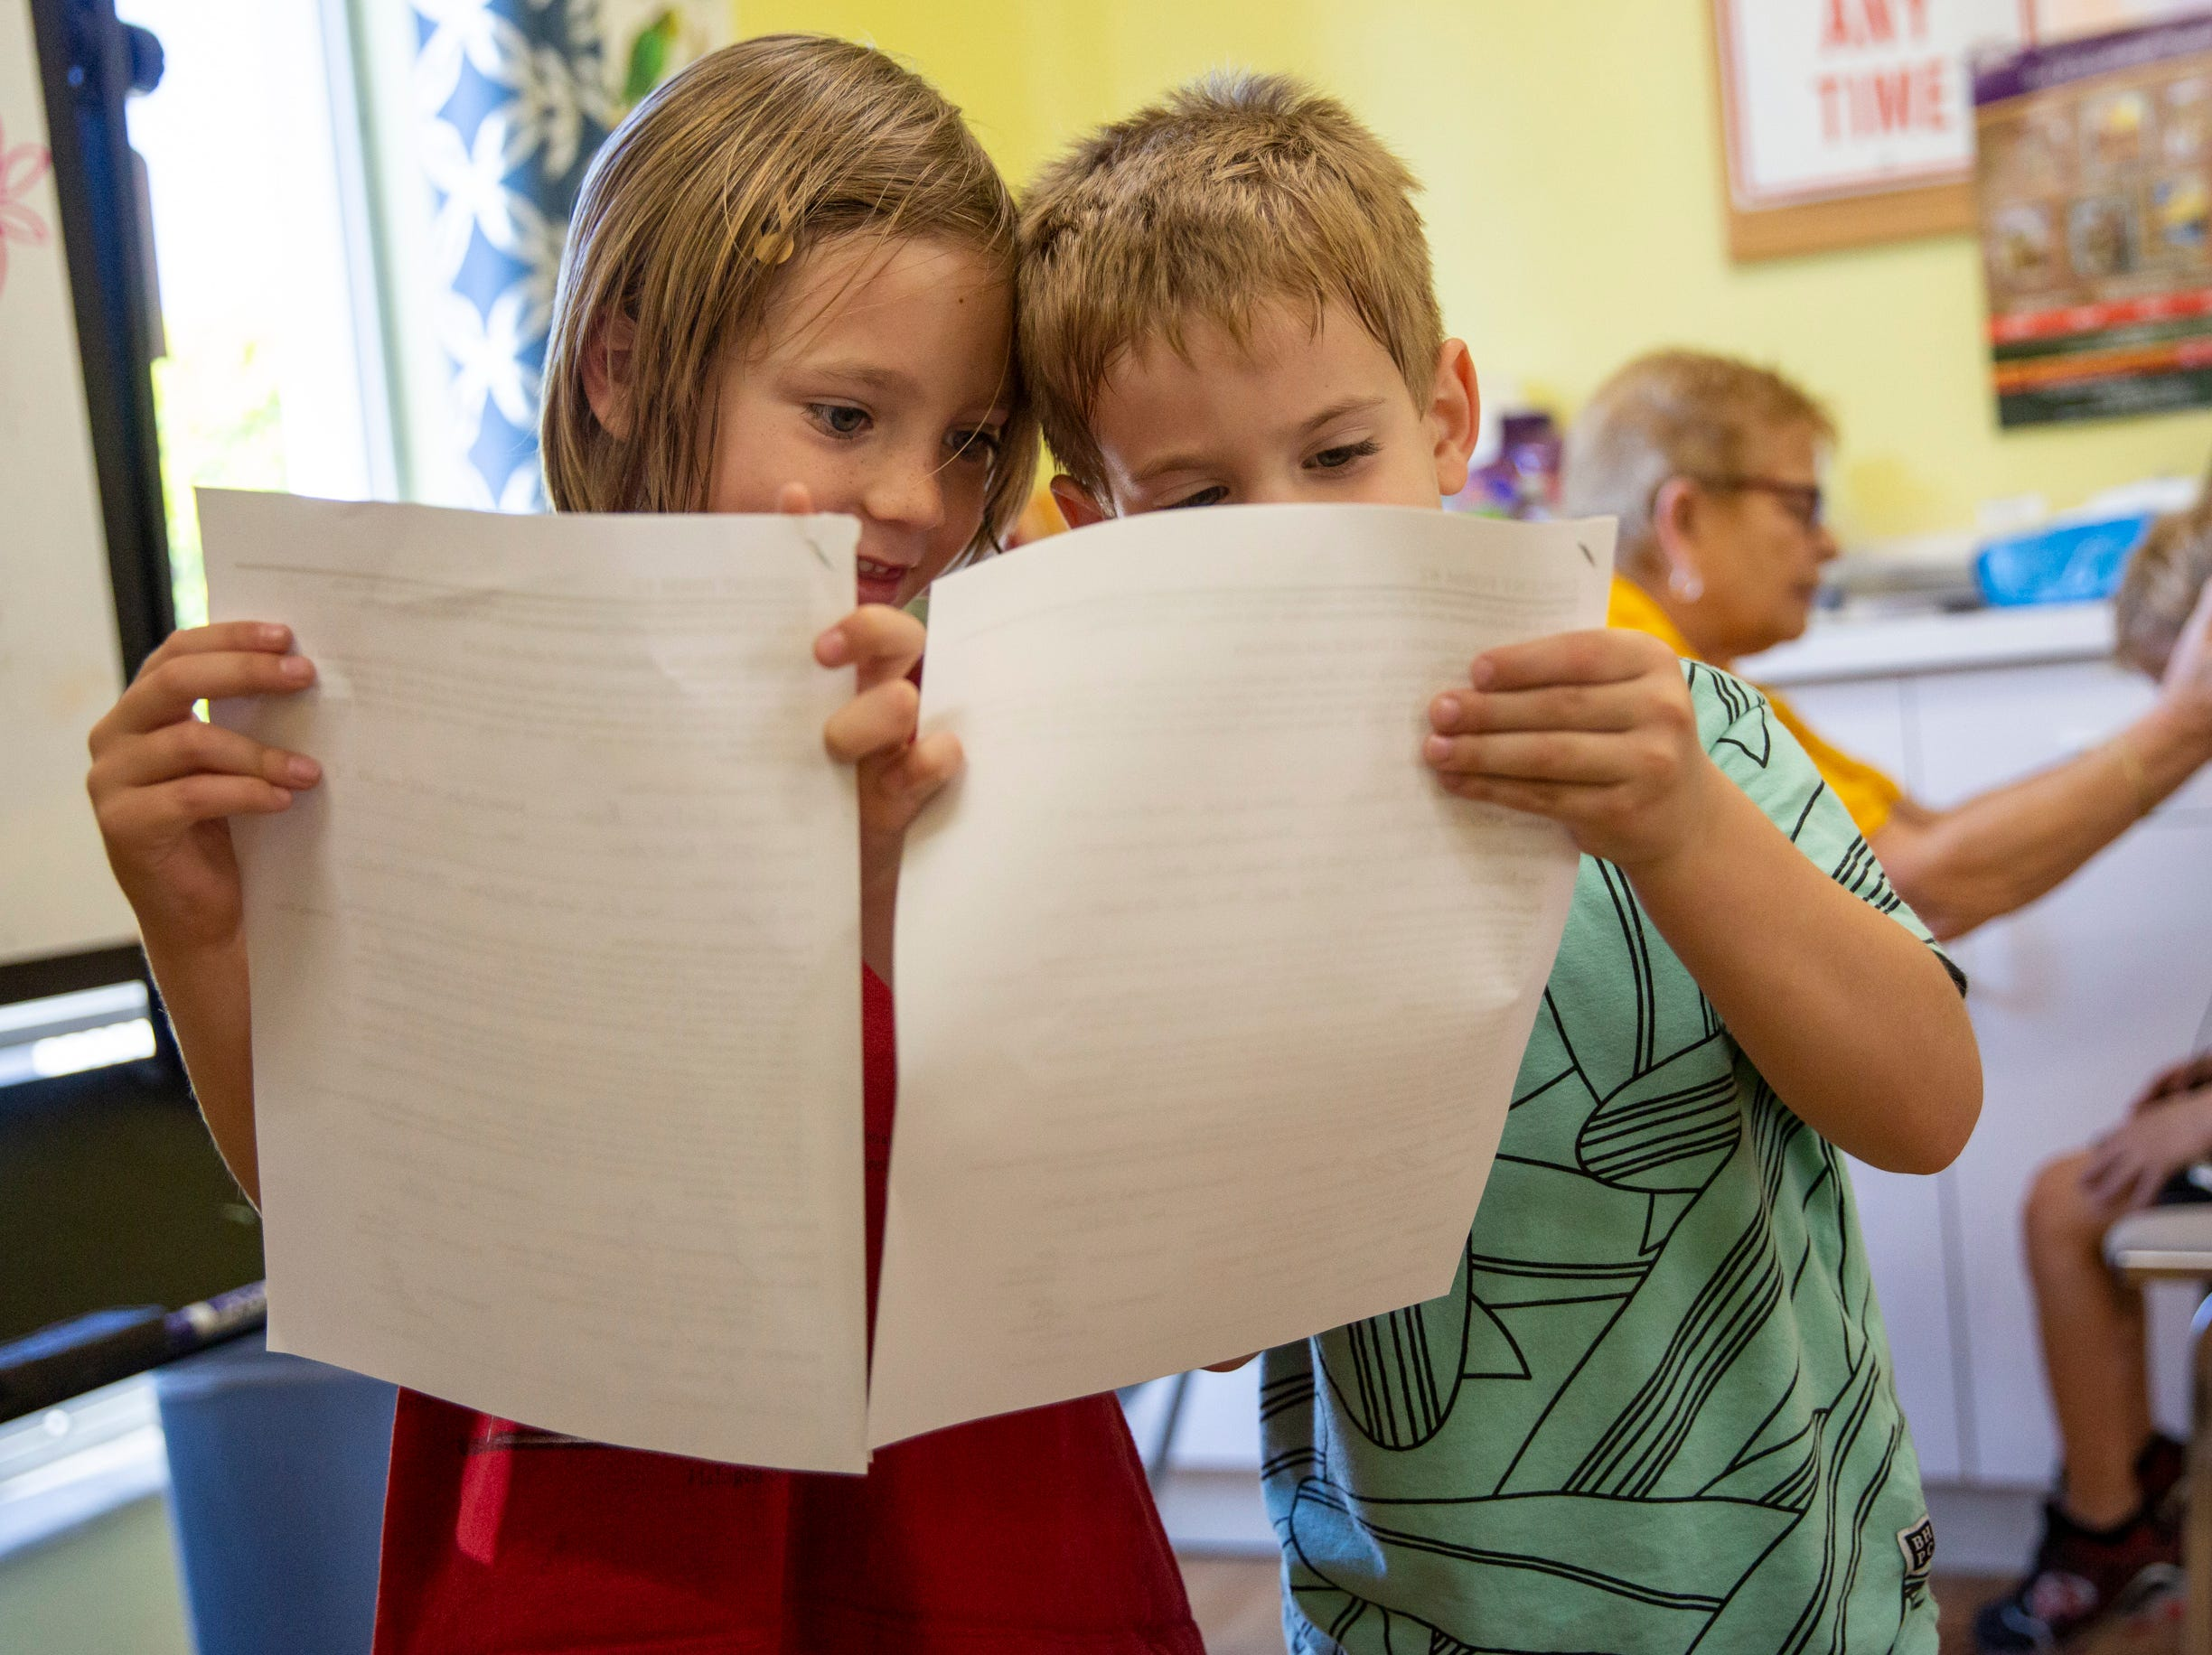 Colin Ryan, 4, left, and Walker Barberio, 4, right, compare their forms at Grace Lutheran Preschool in Naples on Friday, April 12, 2019.